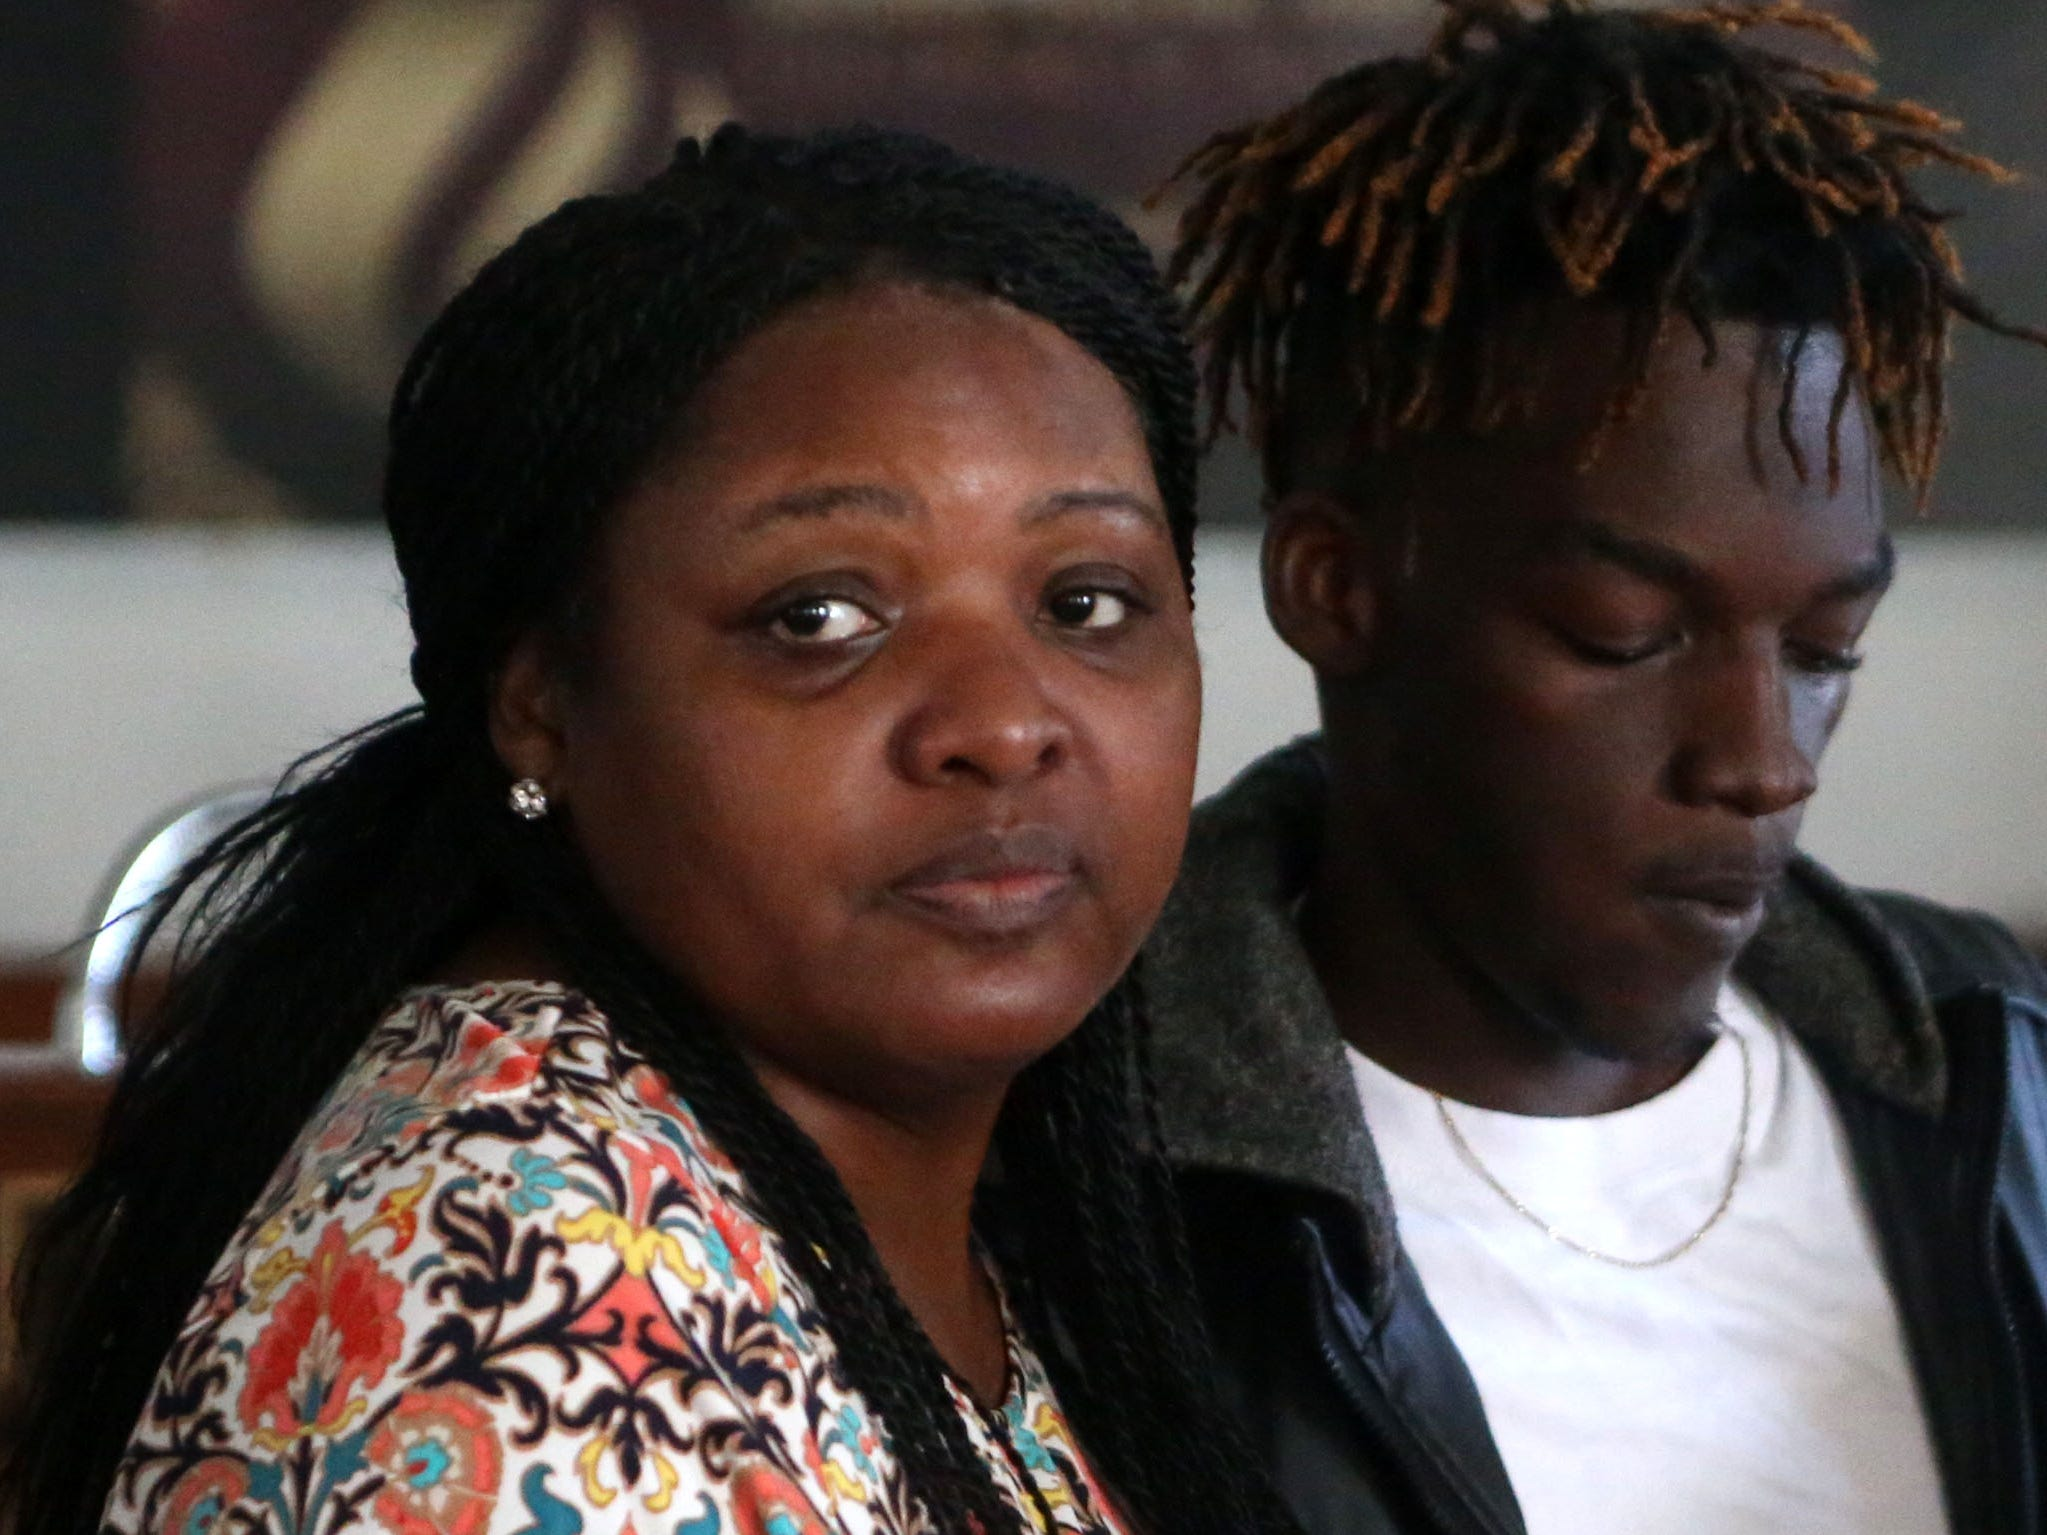 Delisha Green, friend, left, tries to console Tyrone Grant, right, son of Demashell Bass, a woman who could not receive medical attention and died during the hurricane at the Dream, Vision, and Destiny (DVD) Ministry in Gretna, Fla., on Sunday Oct. 14, 2018, after Hurricane Michael hits the Florida panhandle.